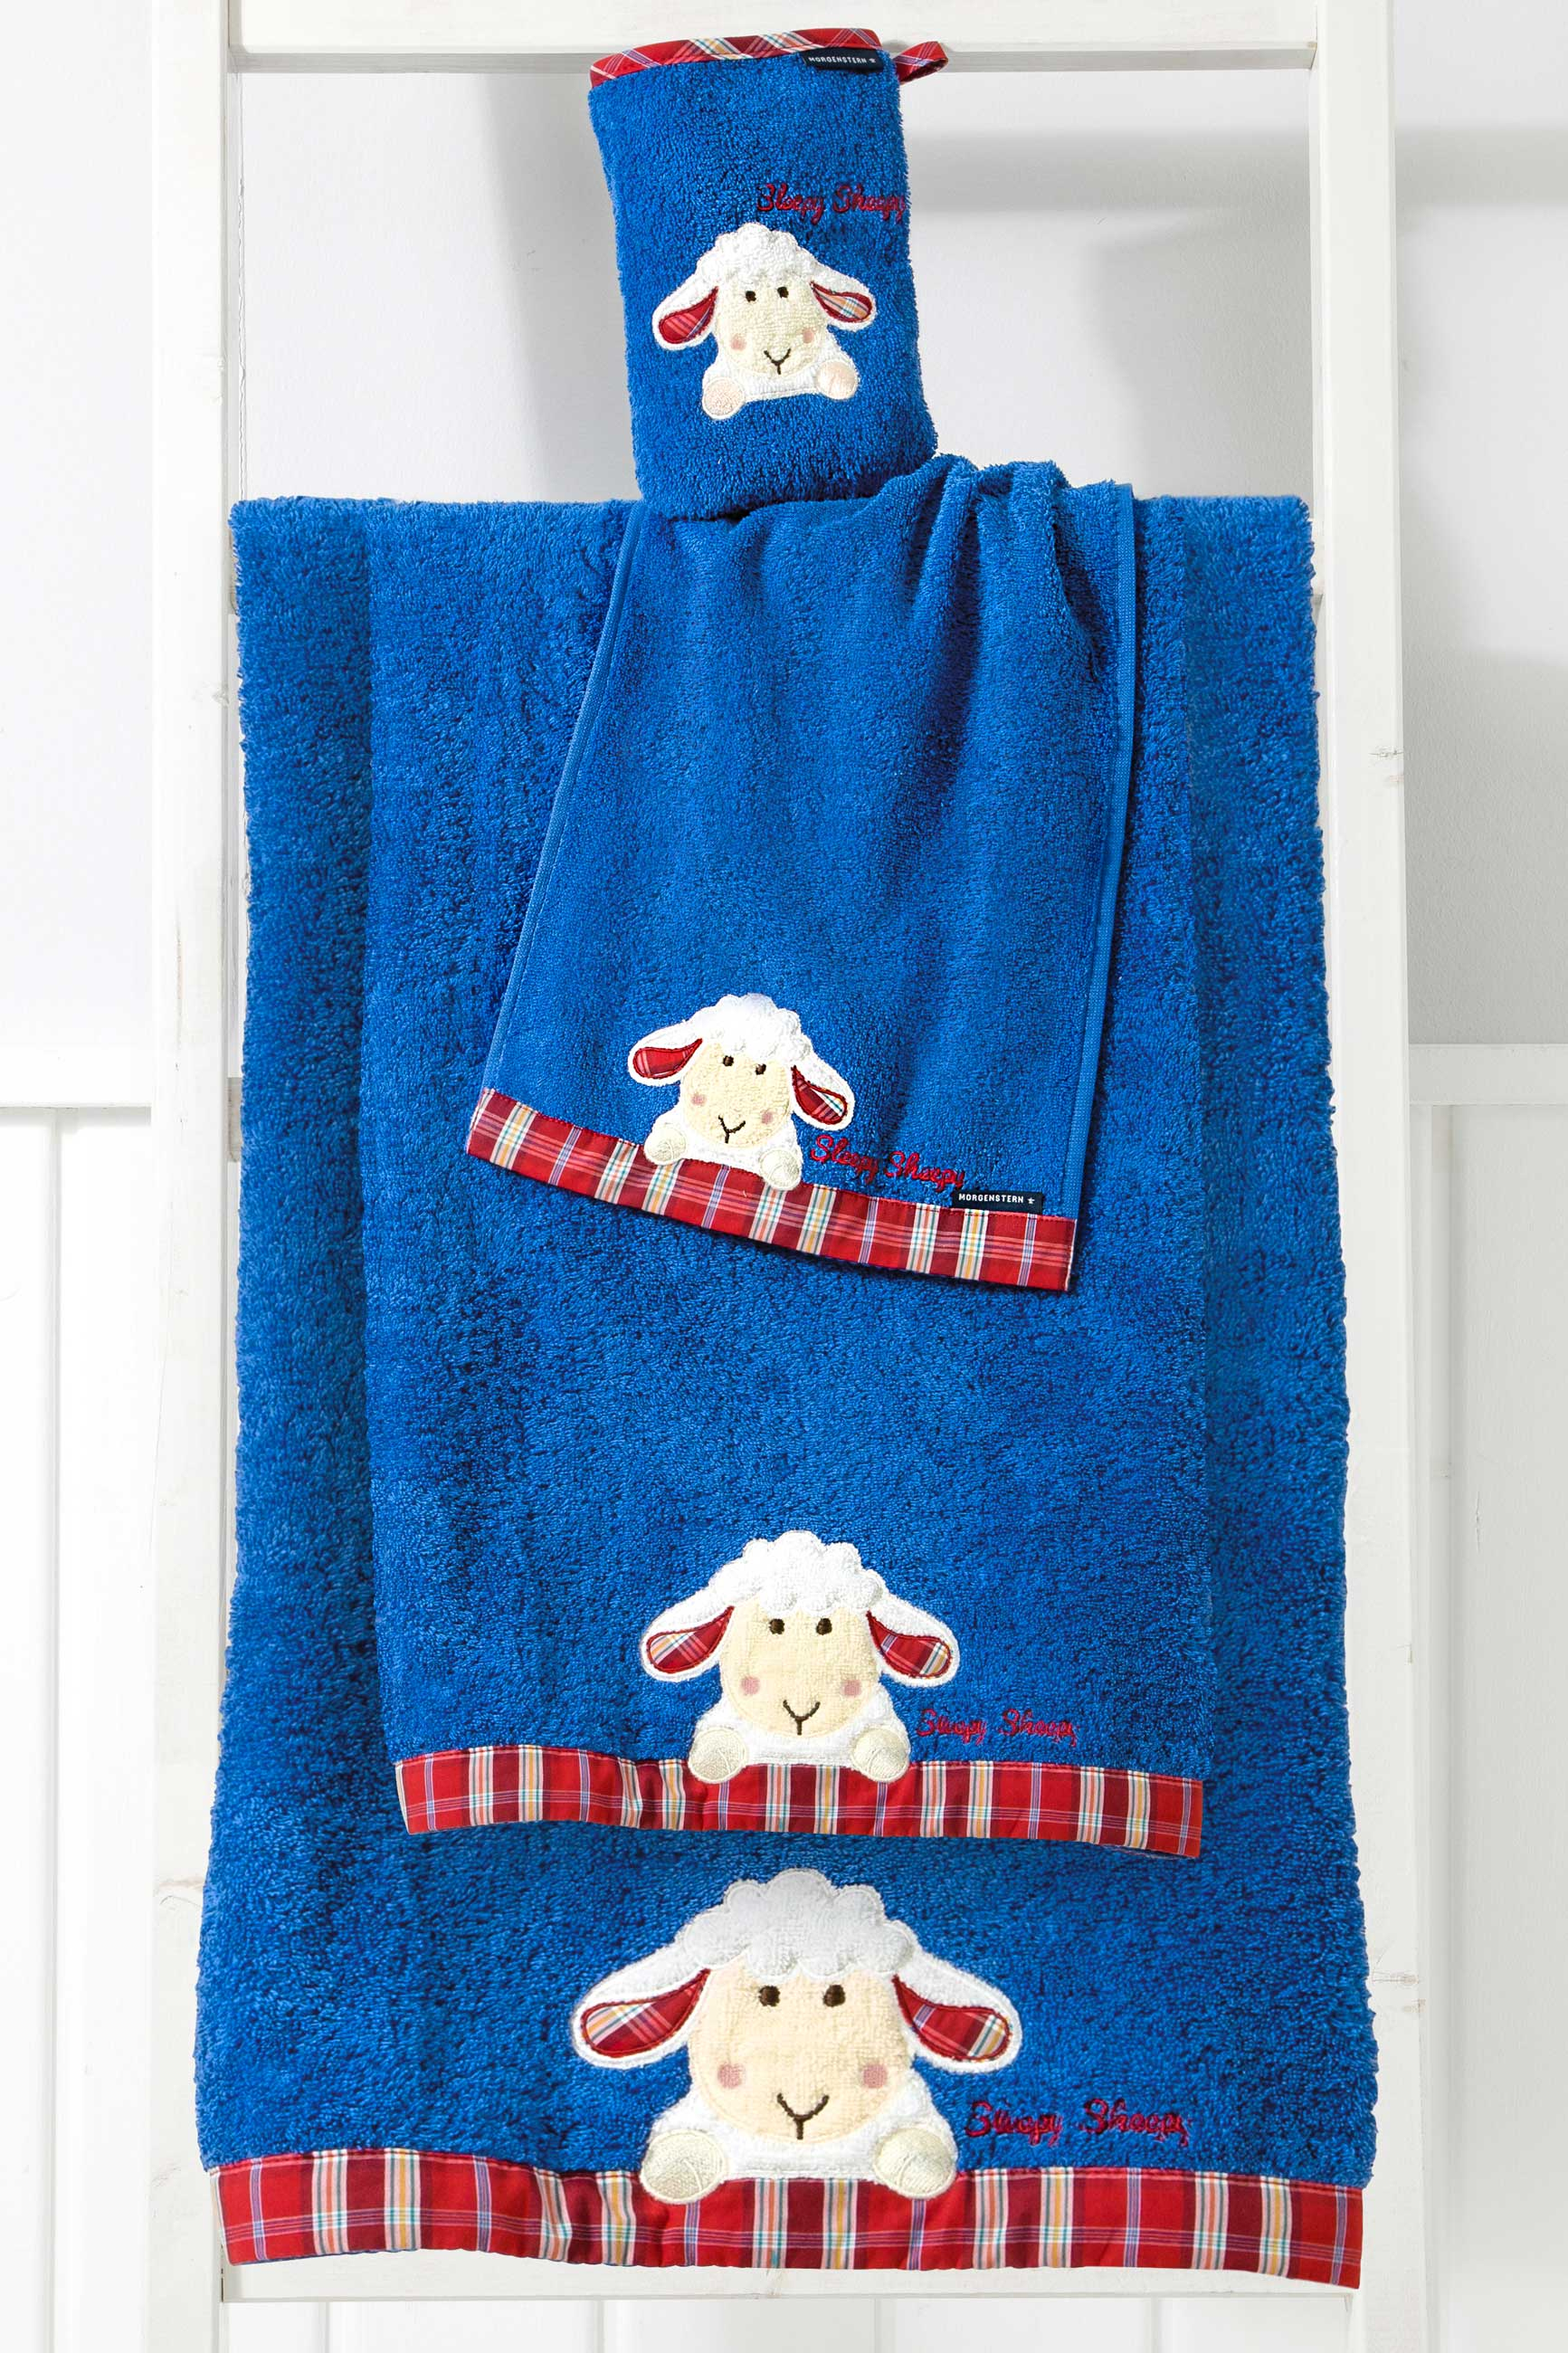 Kinder Handtuch Sleepy Sheepy Kinder Handtuch Serie Blau Morgenstern